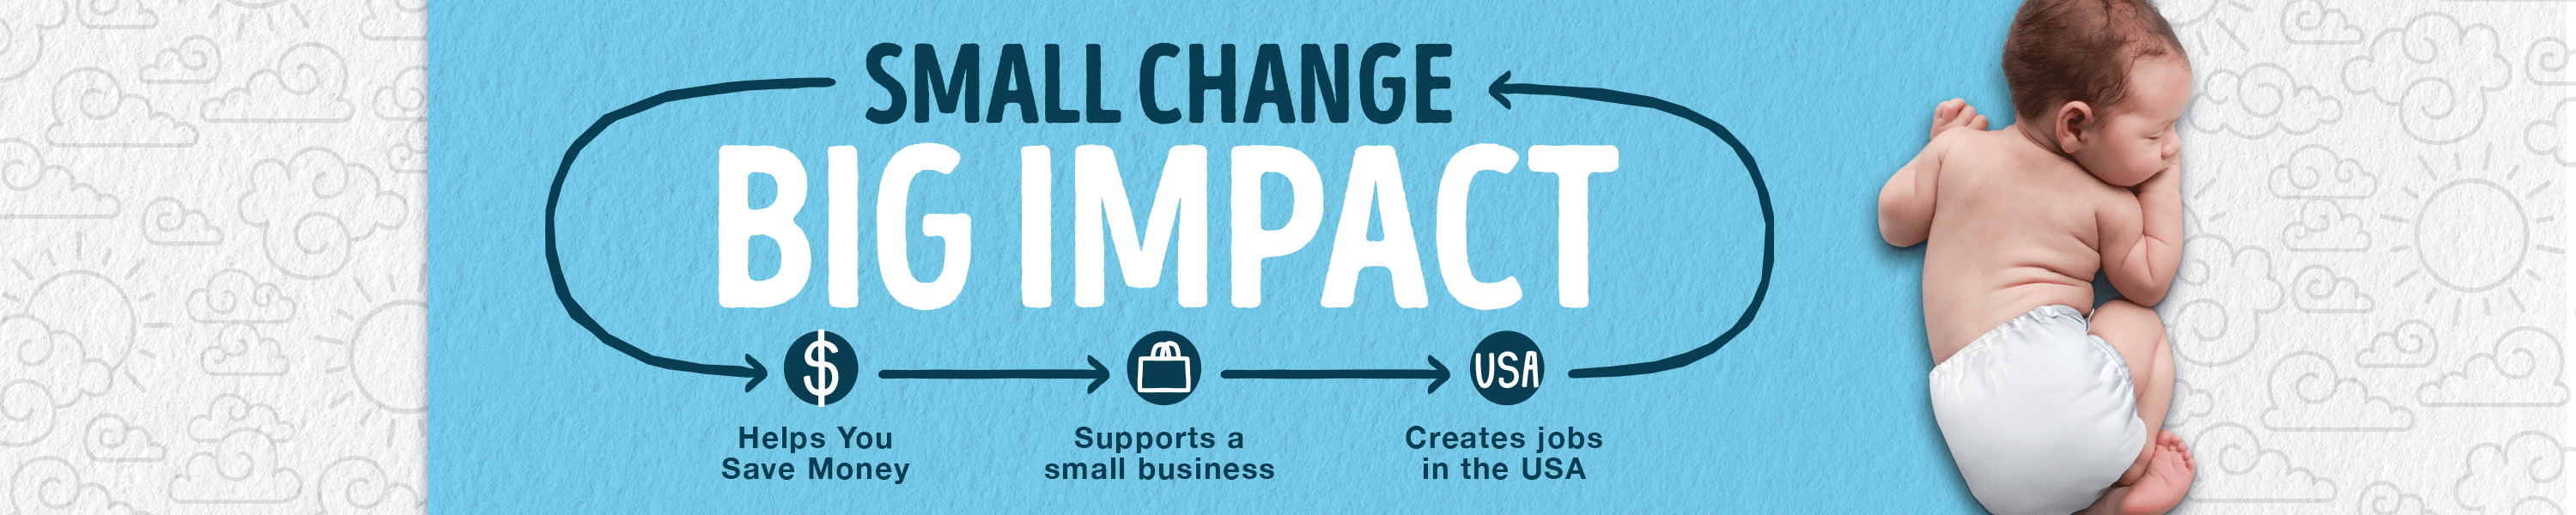 Image of Small change, Big Impact